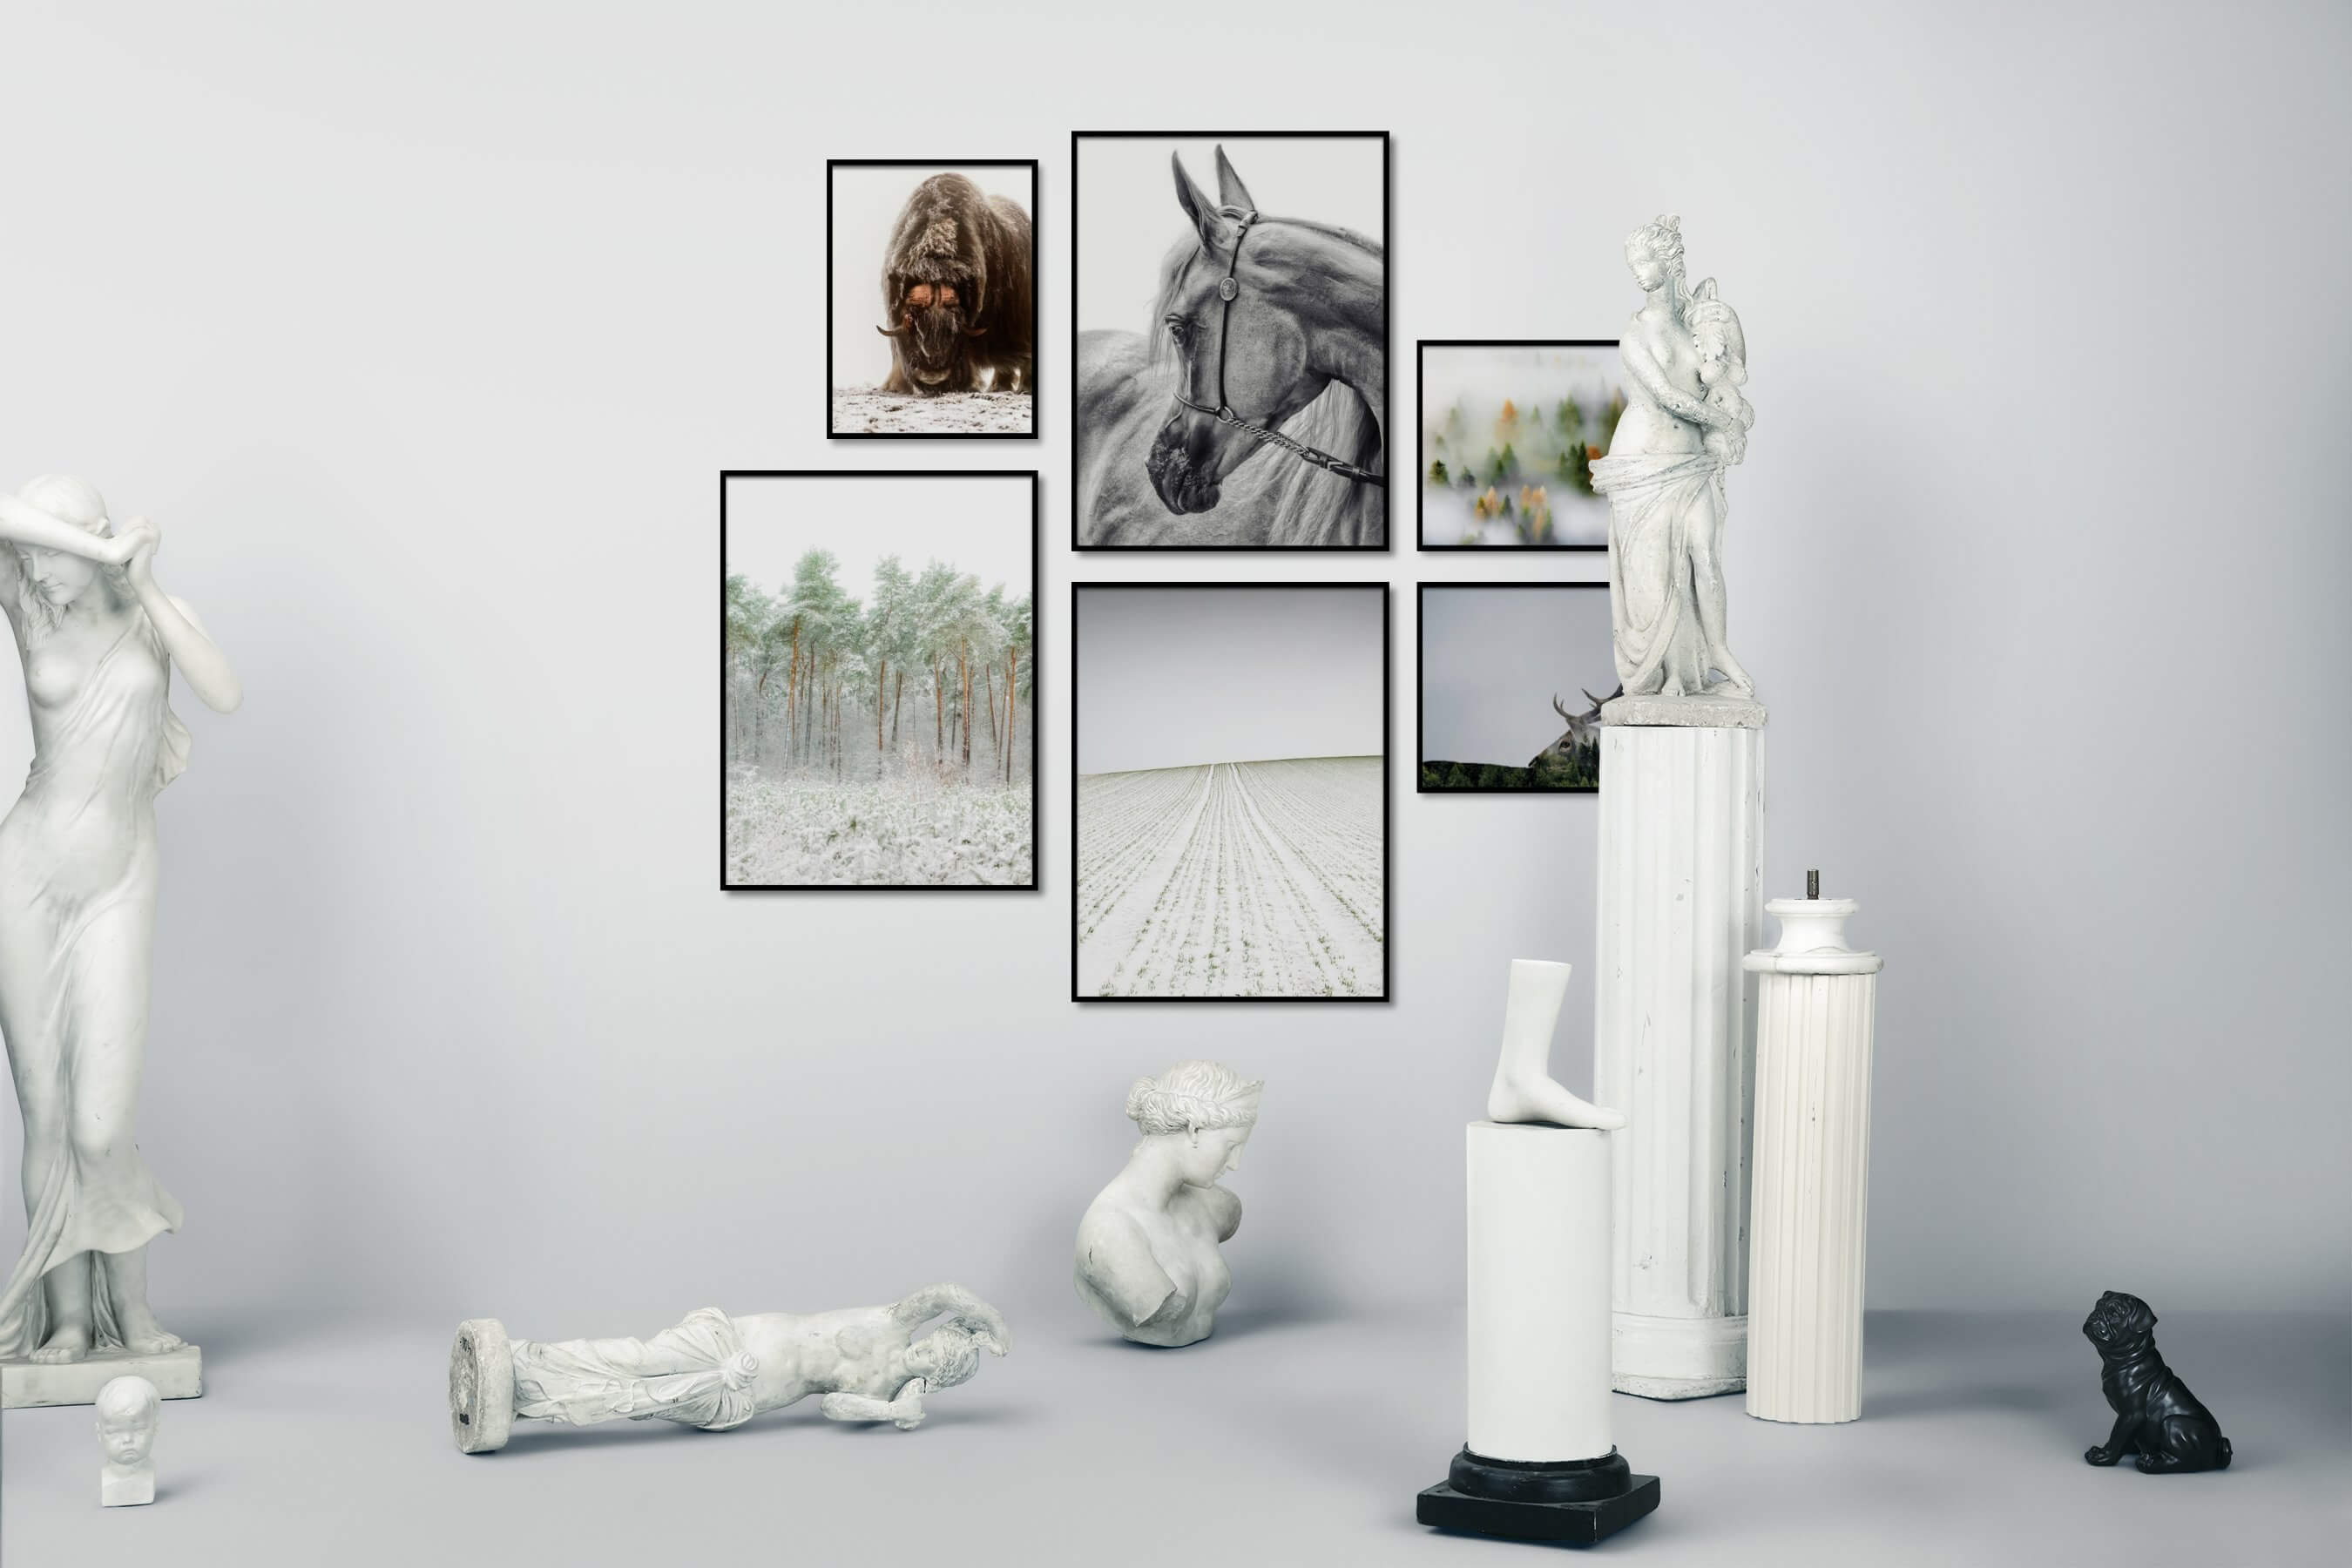 Gallery wall idea with six framed pictures arranged on a wall depicting Animals, Black & White, Country Life, Bright Tones, Nature, Mindfulness, and For the Minimalist